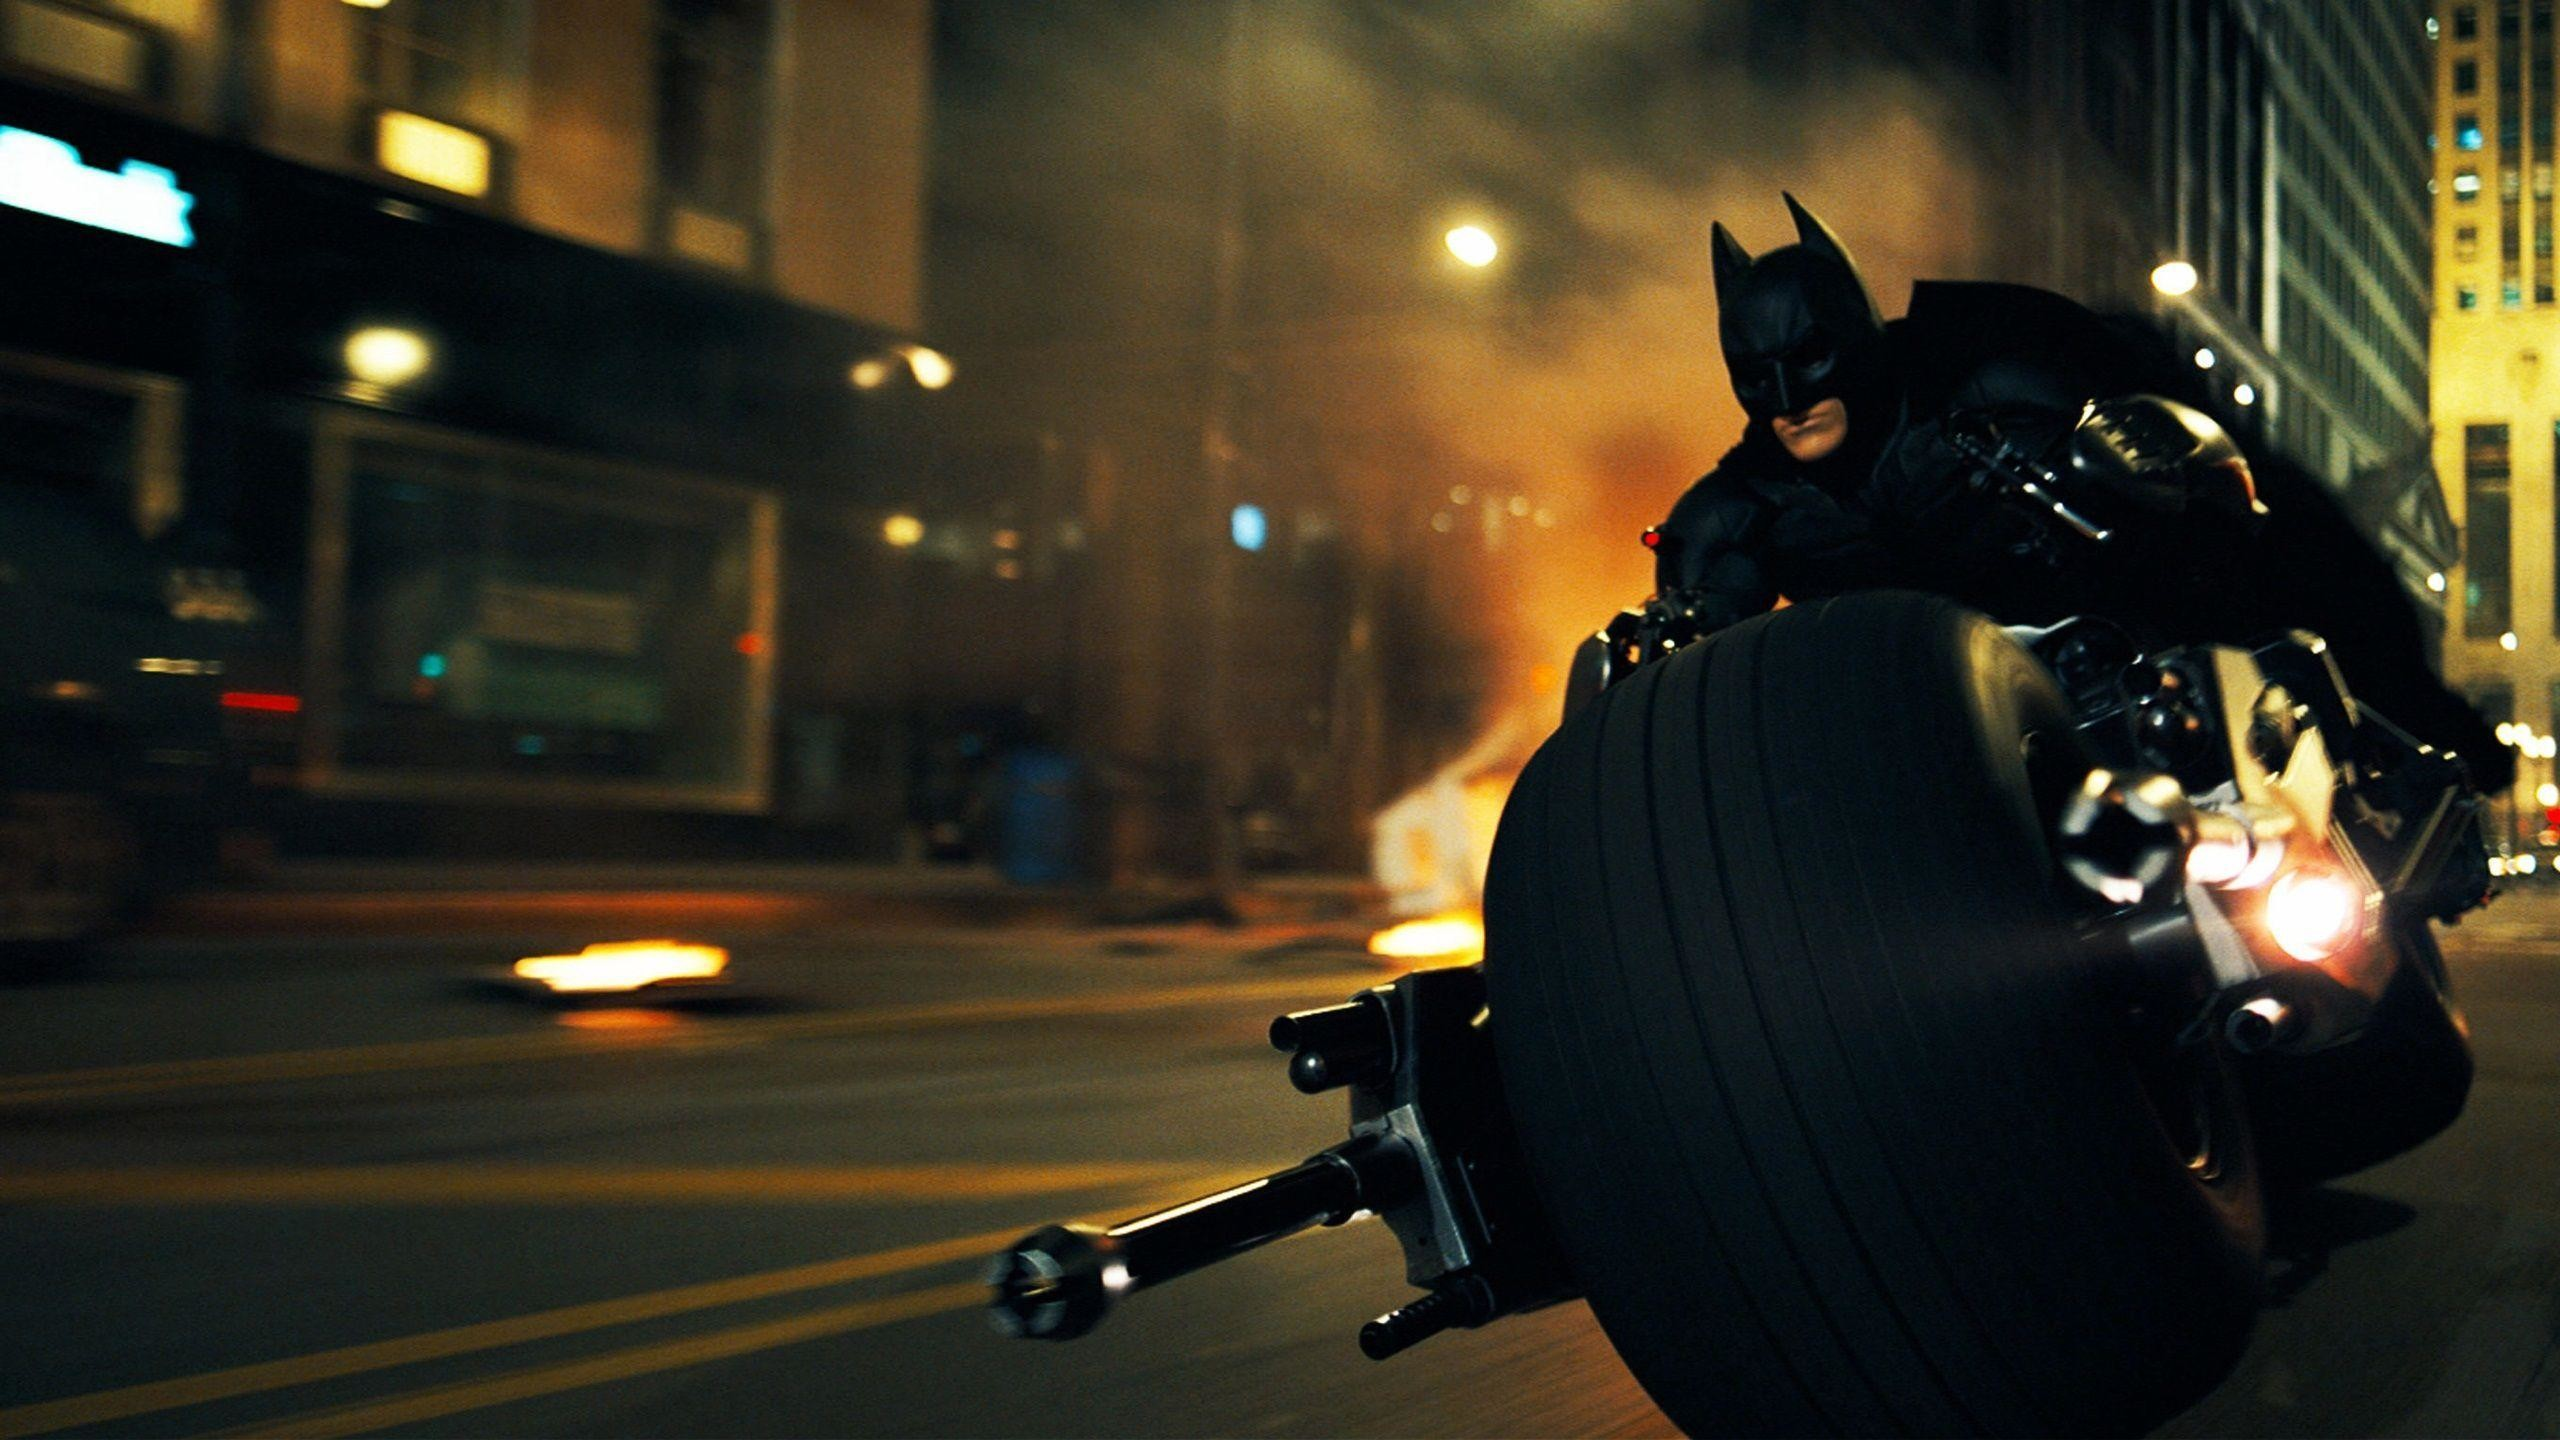 Dark Knight Wallpaper Hd Wallpapertag